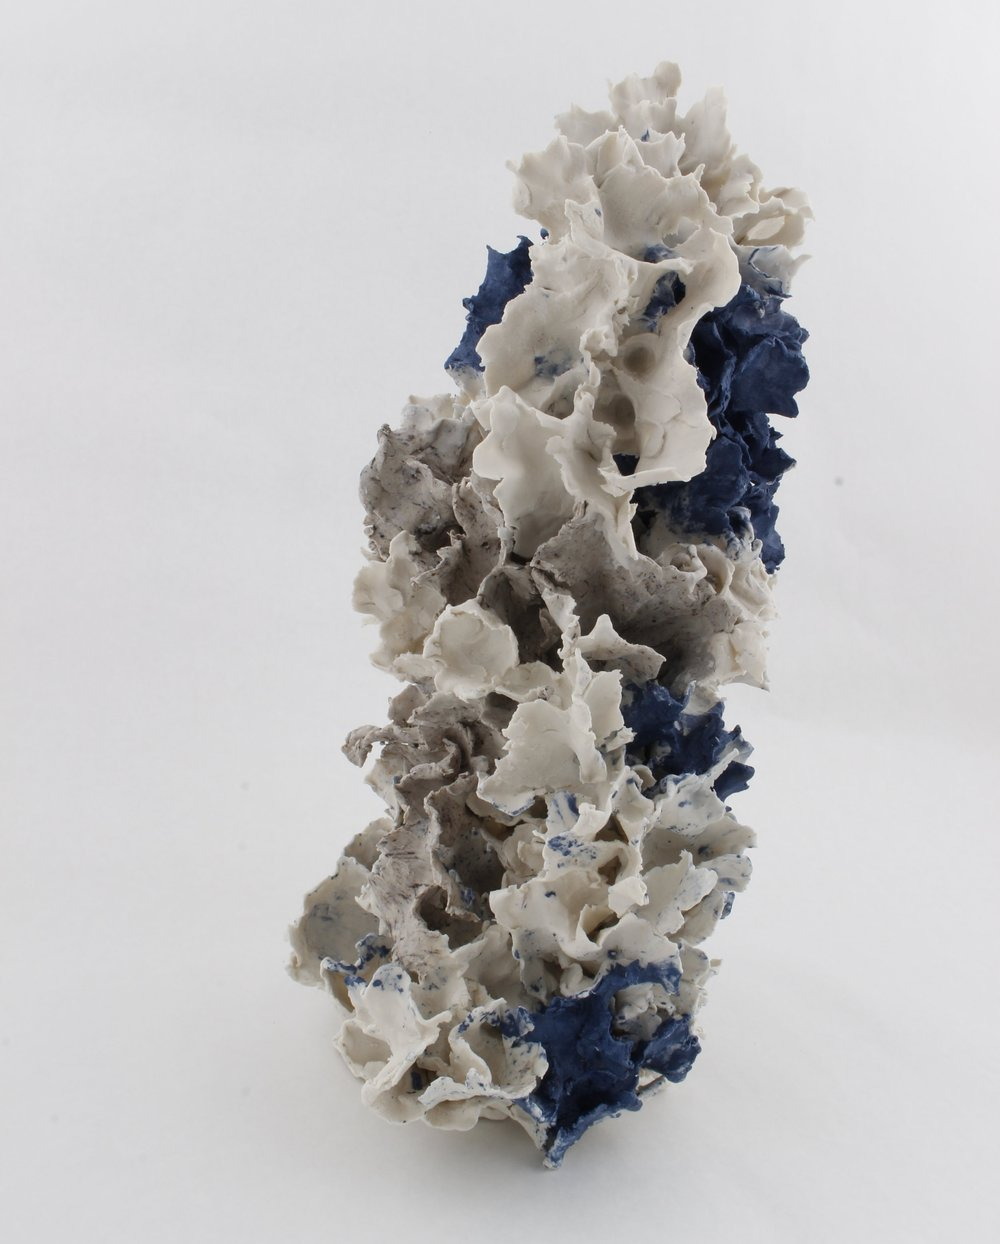 Renqian Yang , Simultaneous Growth , 2018. Paper clay, fire to cone 6, electric kiln, 8 x 17 x 8 inch ©Renqian Yang, courtesy Fou Gallery. 杨人倩,同步生长,2018. 瓷泥,烧至Cone 6,电窑,20.3 x 43.2 x 20.3 cm © 杨人倩,致谢否画廊